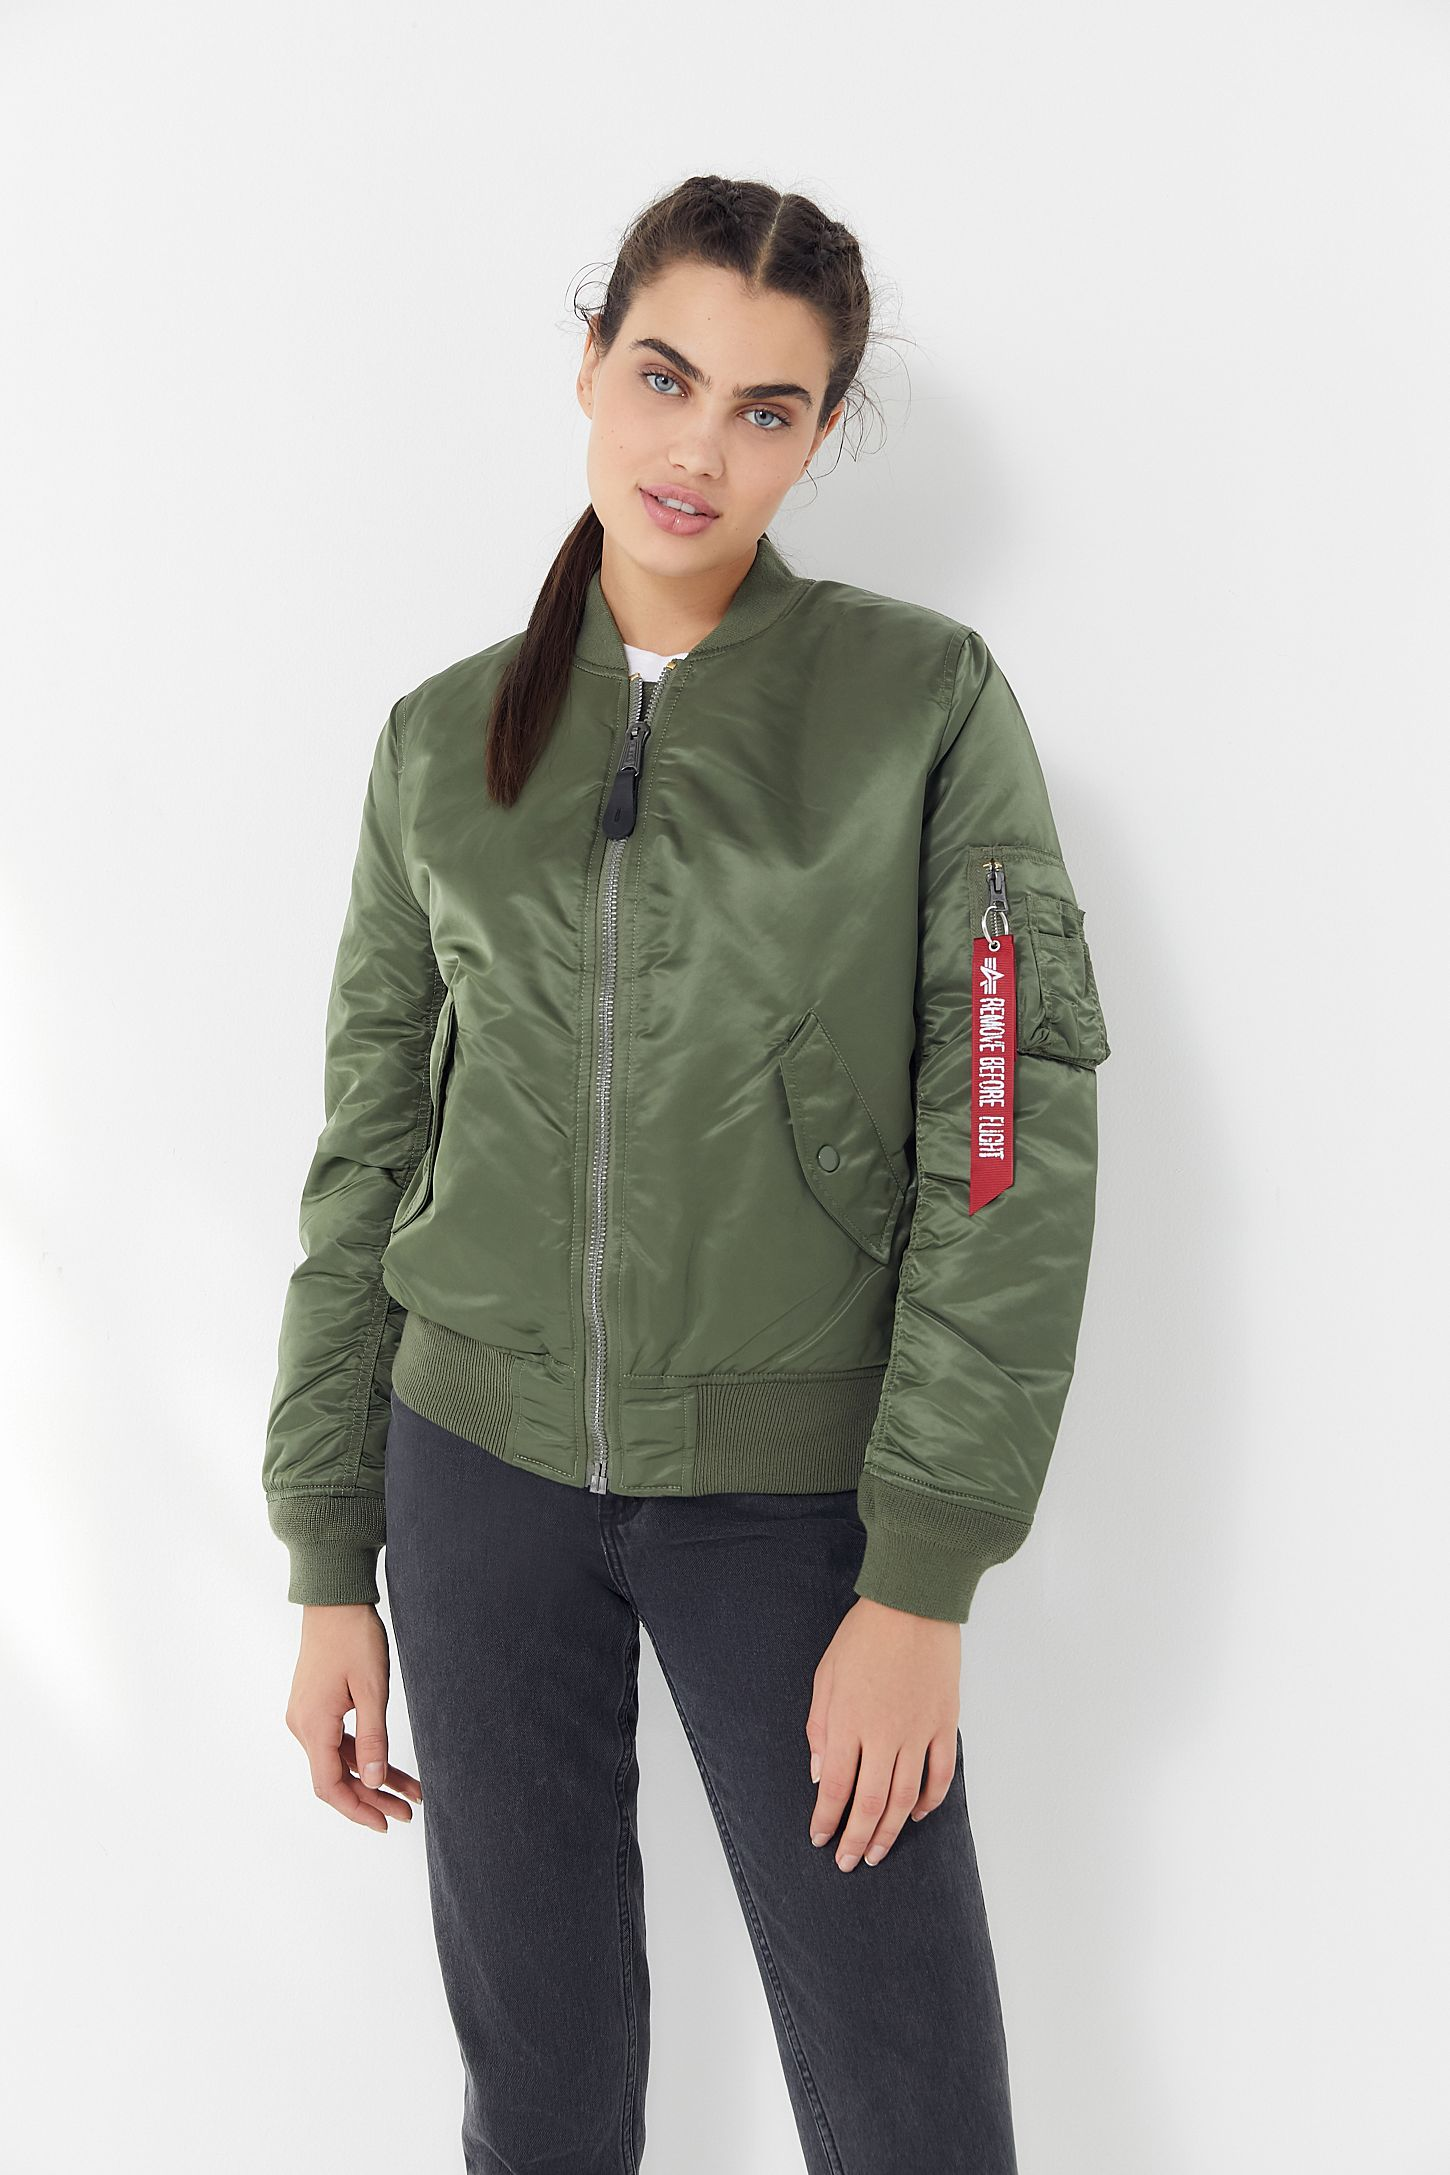 Slide View  6  Alpha Industries MA-1 Bomber Jacket 40c198eacc9